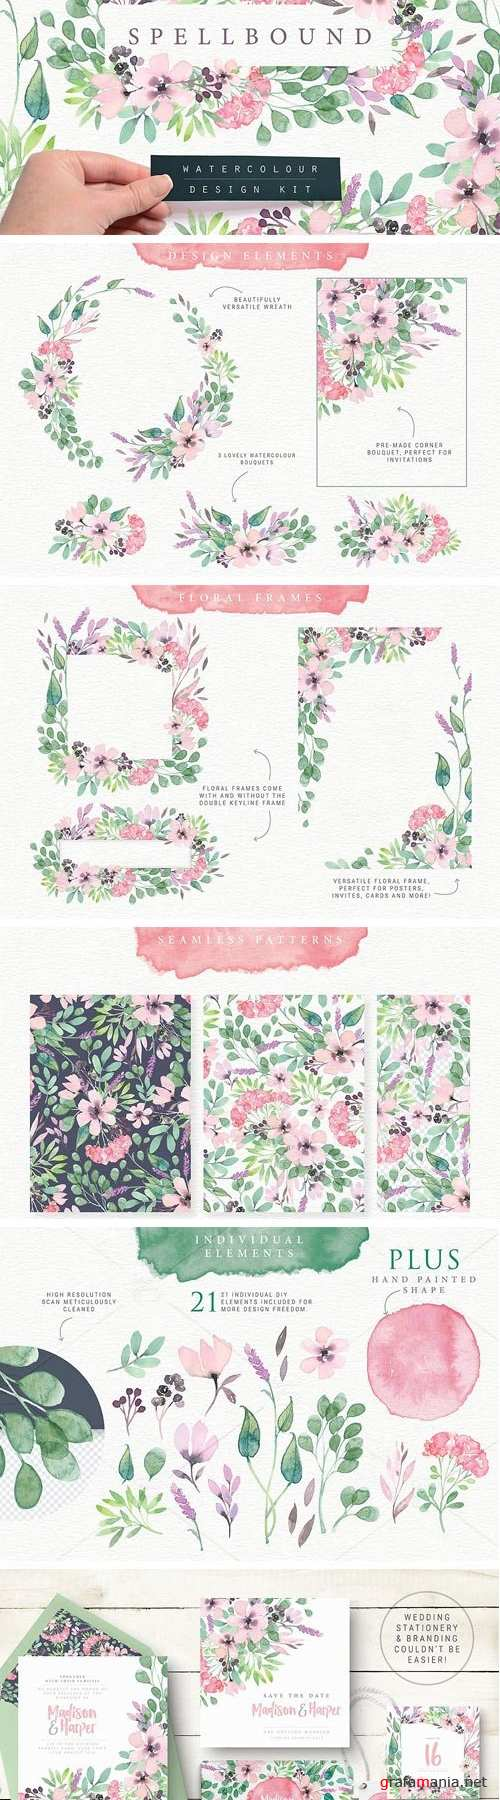 Spellbound Watercolour Design Kit 1723043